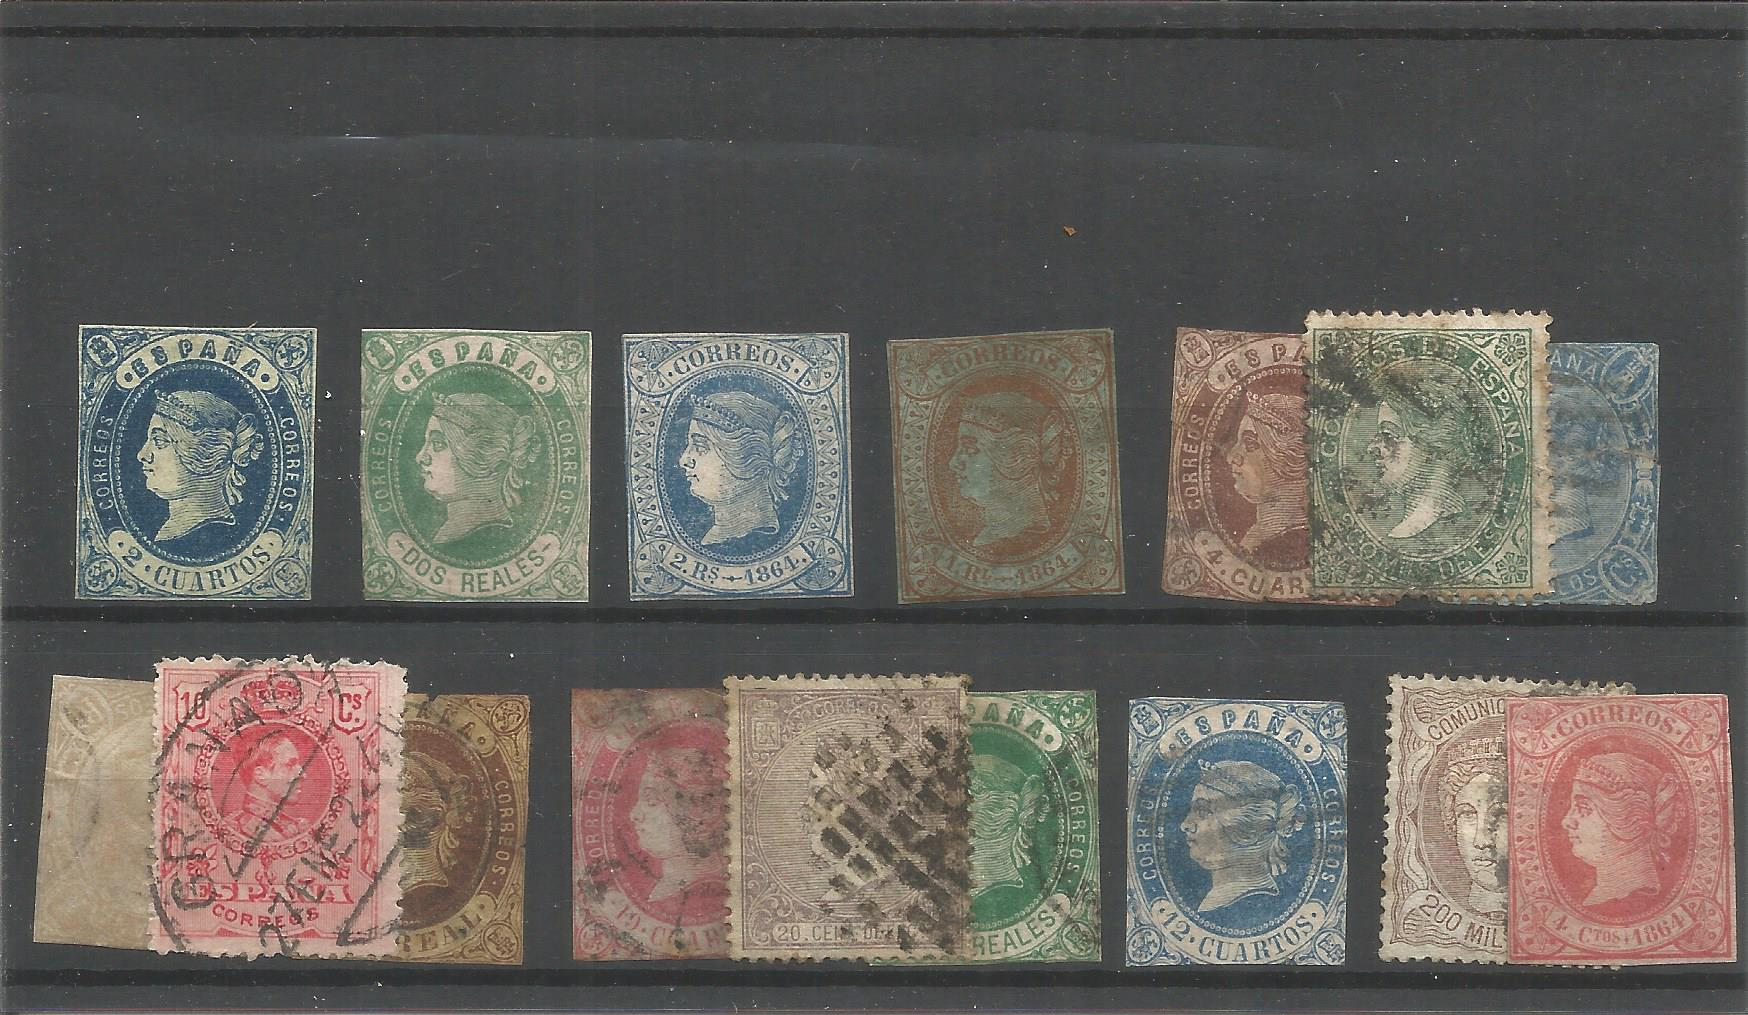 16 Spanish stamps on stockcard. Good condition. We combine postage on multiple winning lots and